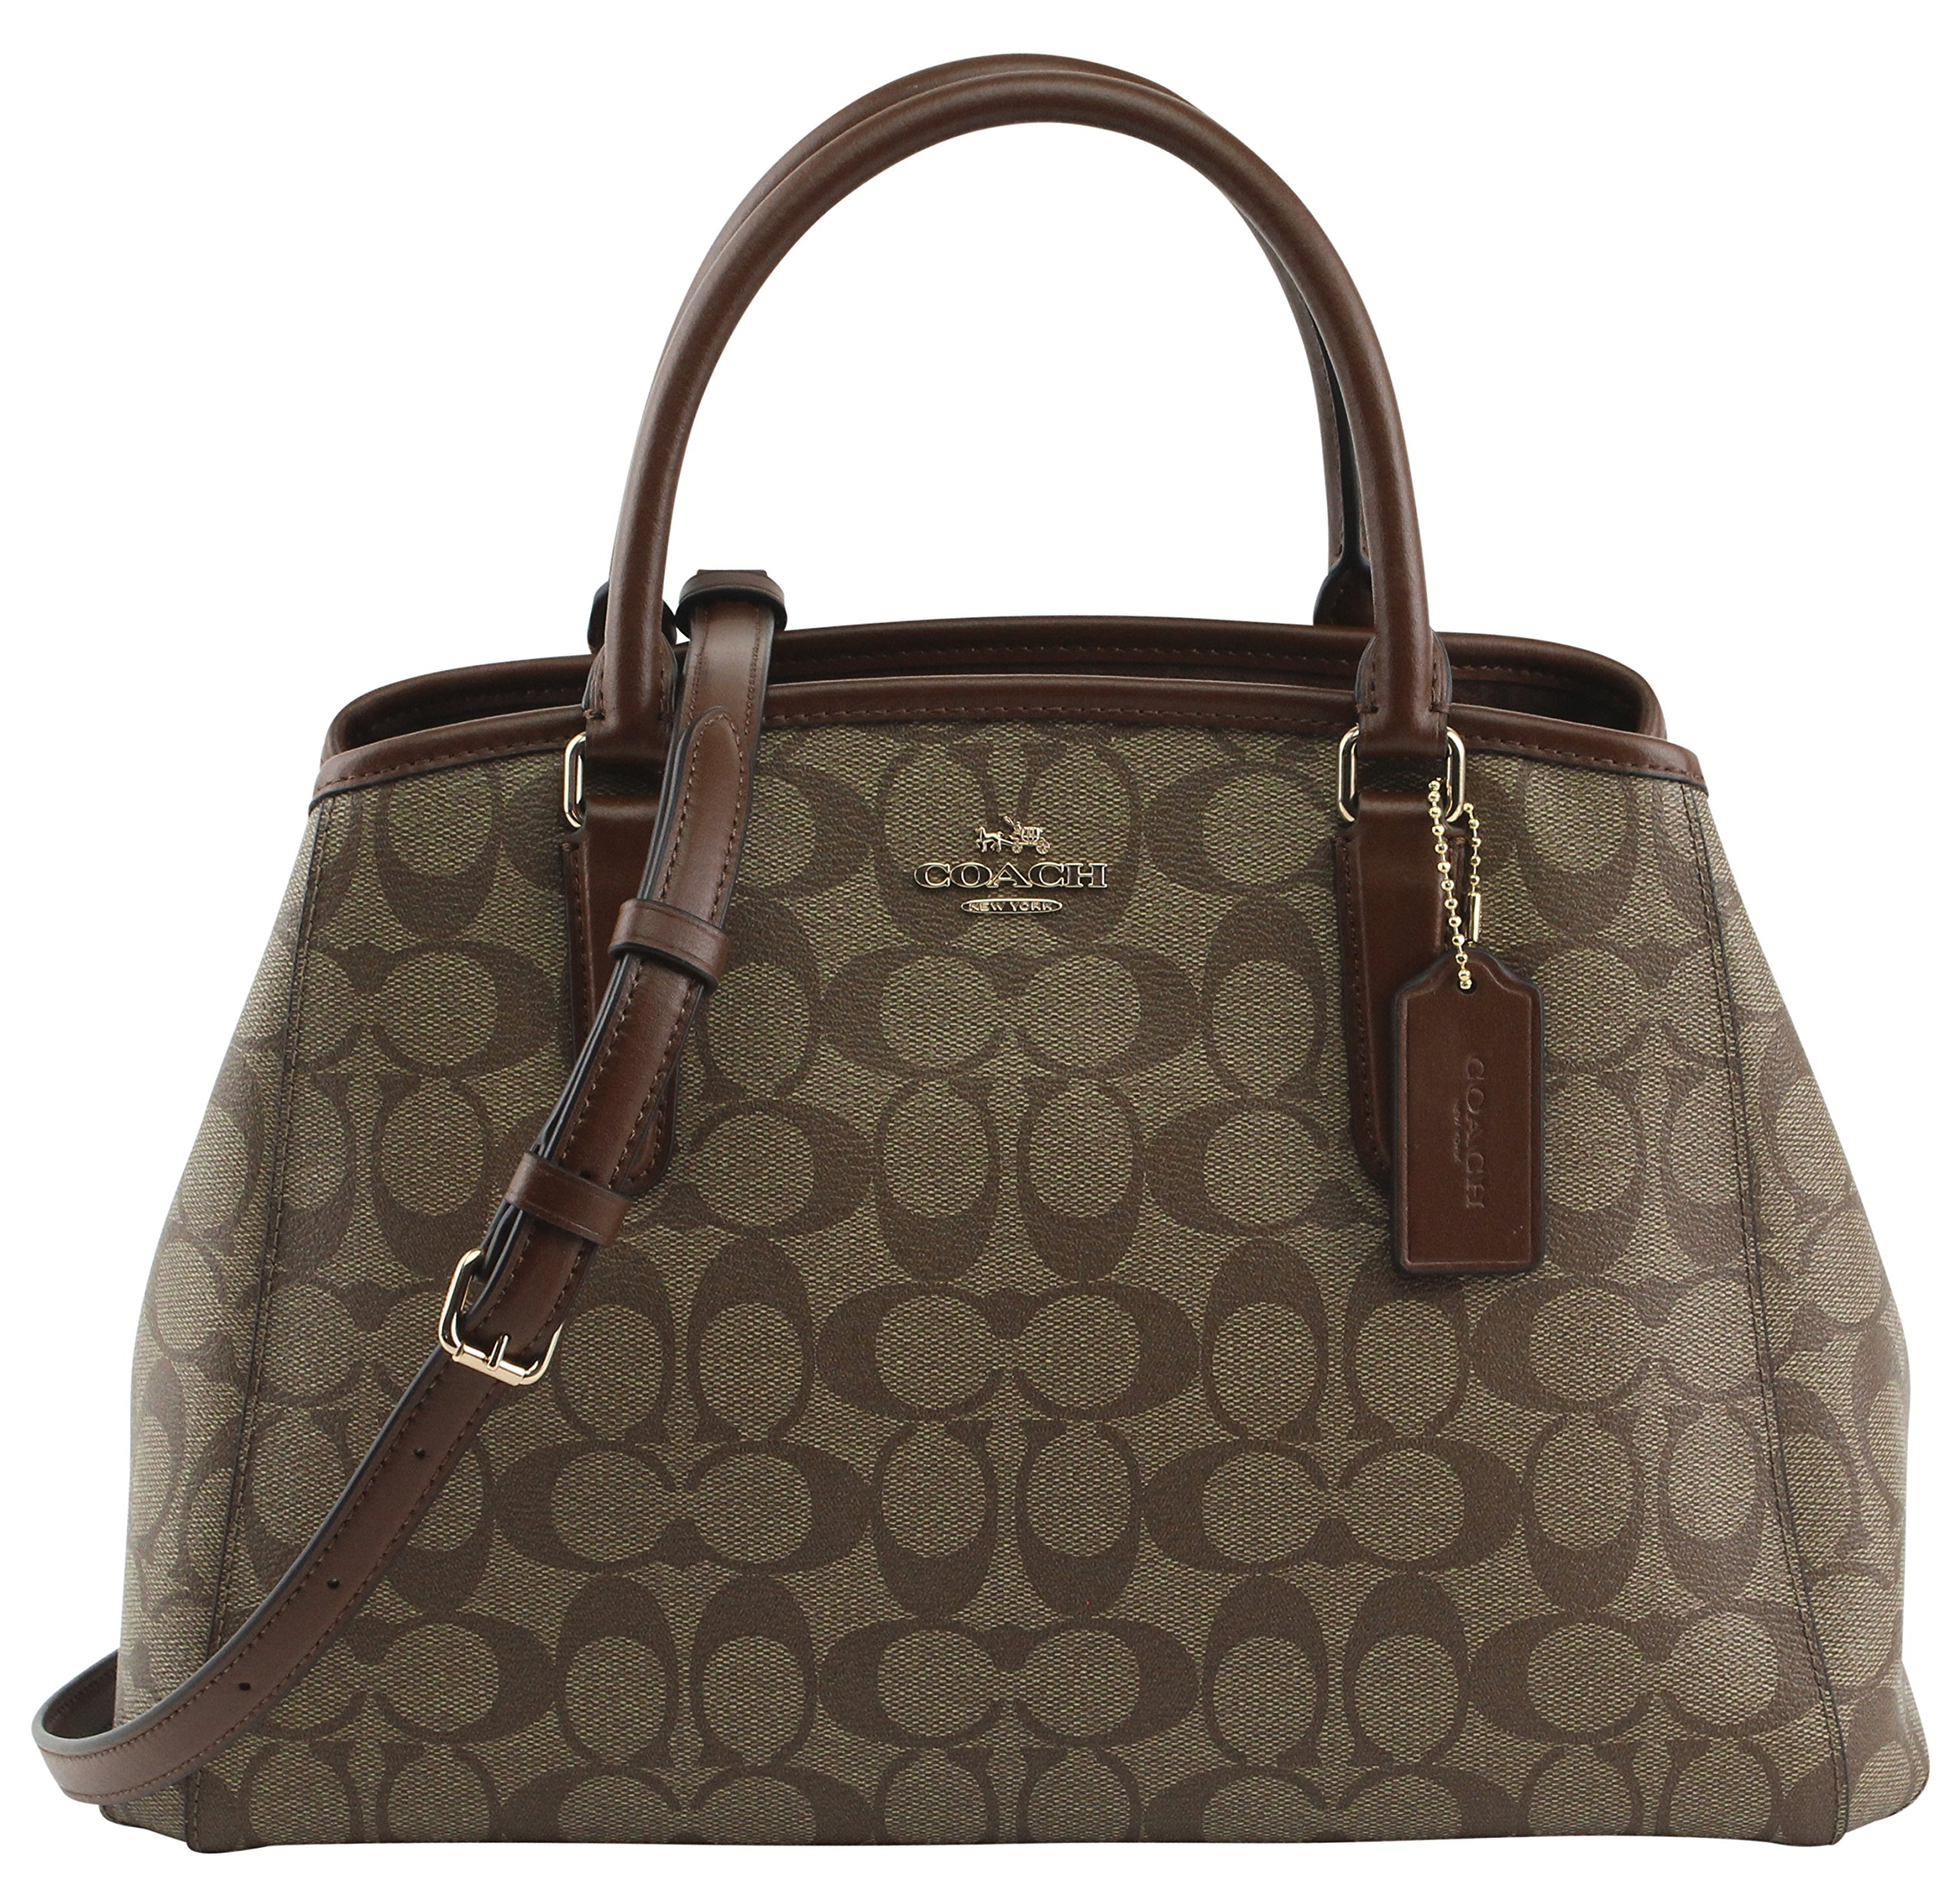 Coach Women's Signature Small Margot Carryal Hand Bag, Style F58310, Im Khaki Saddle